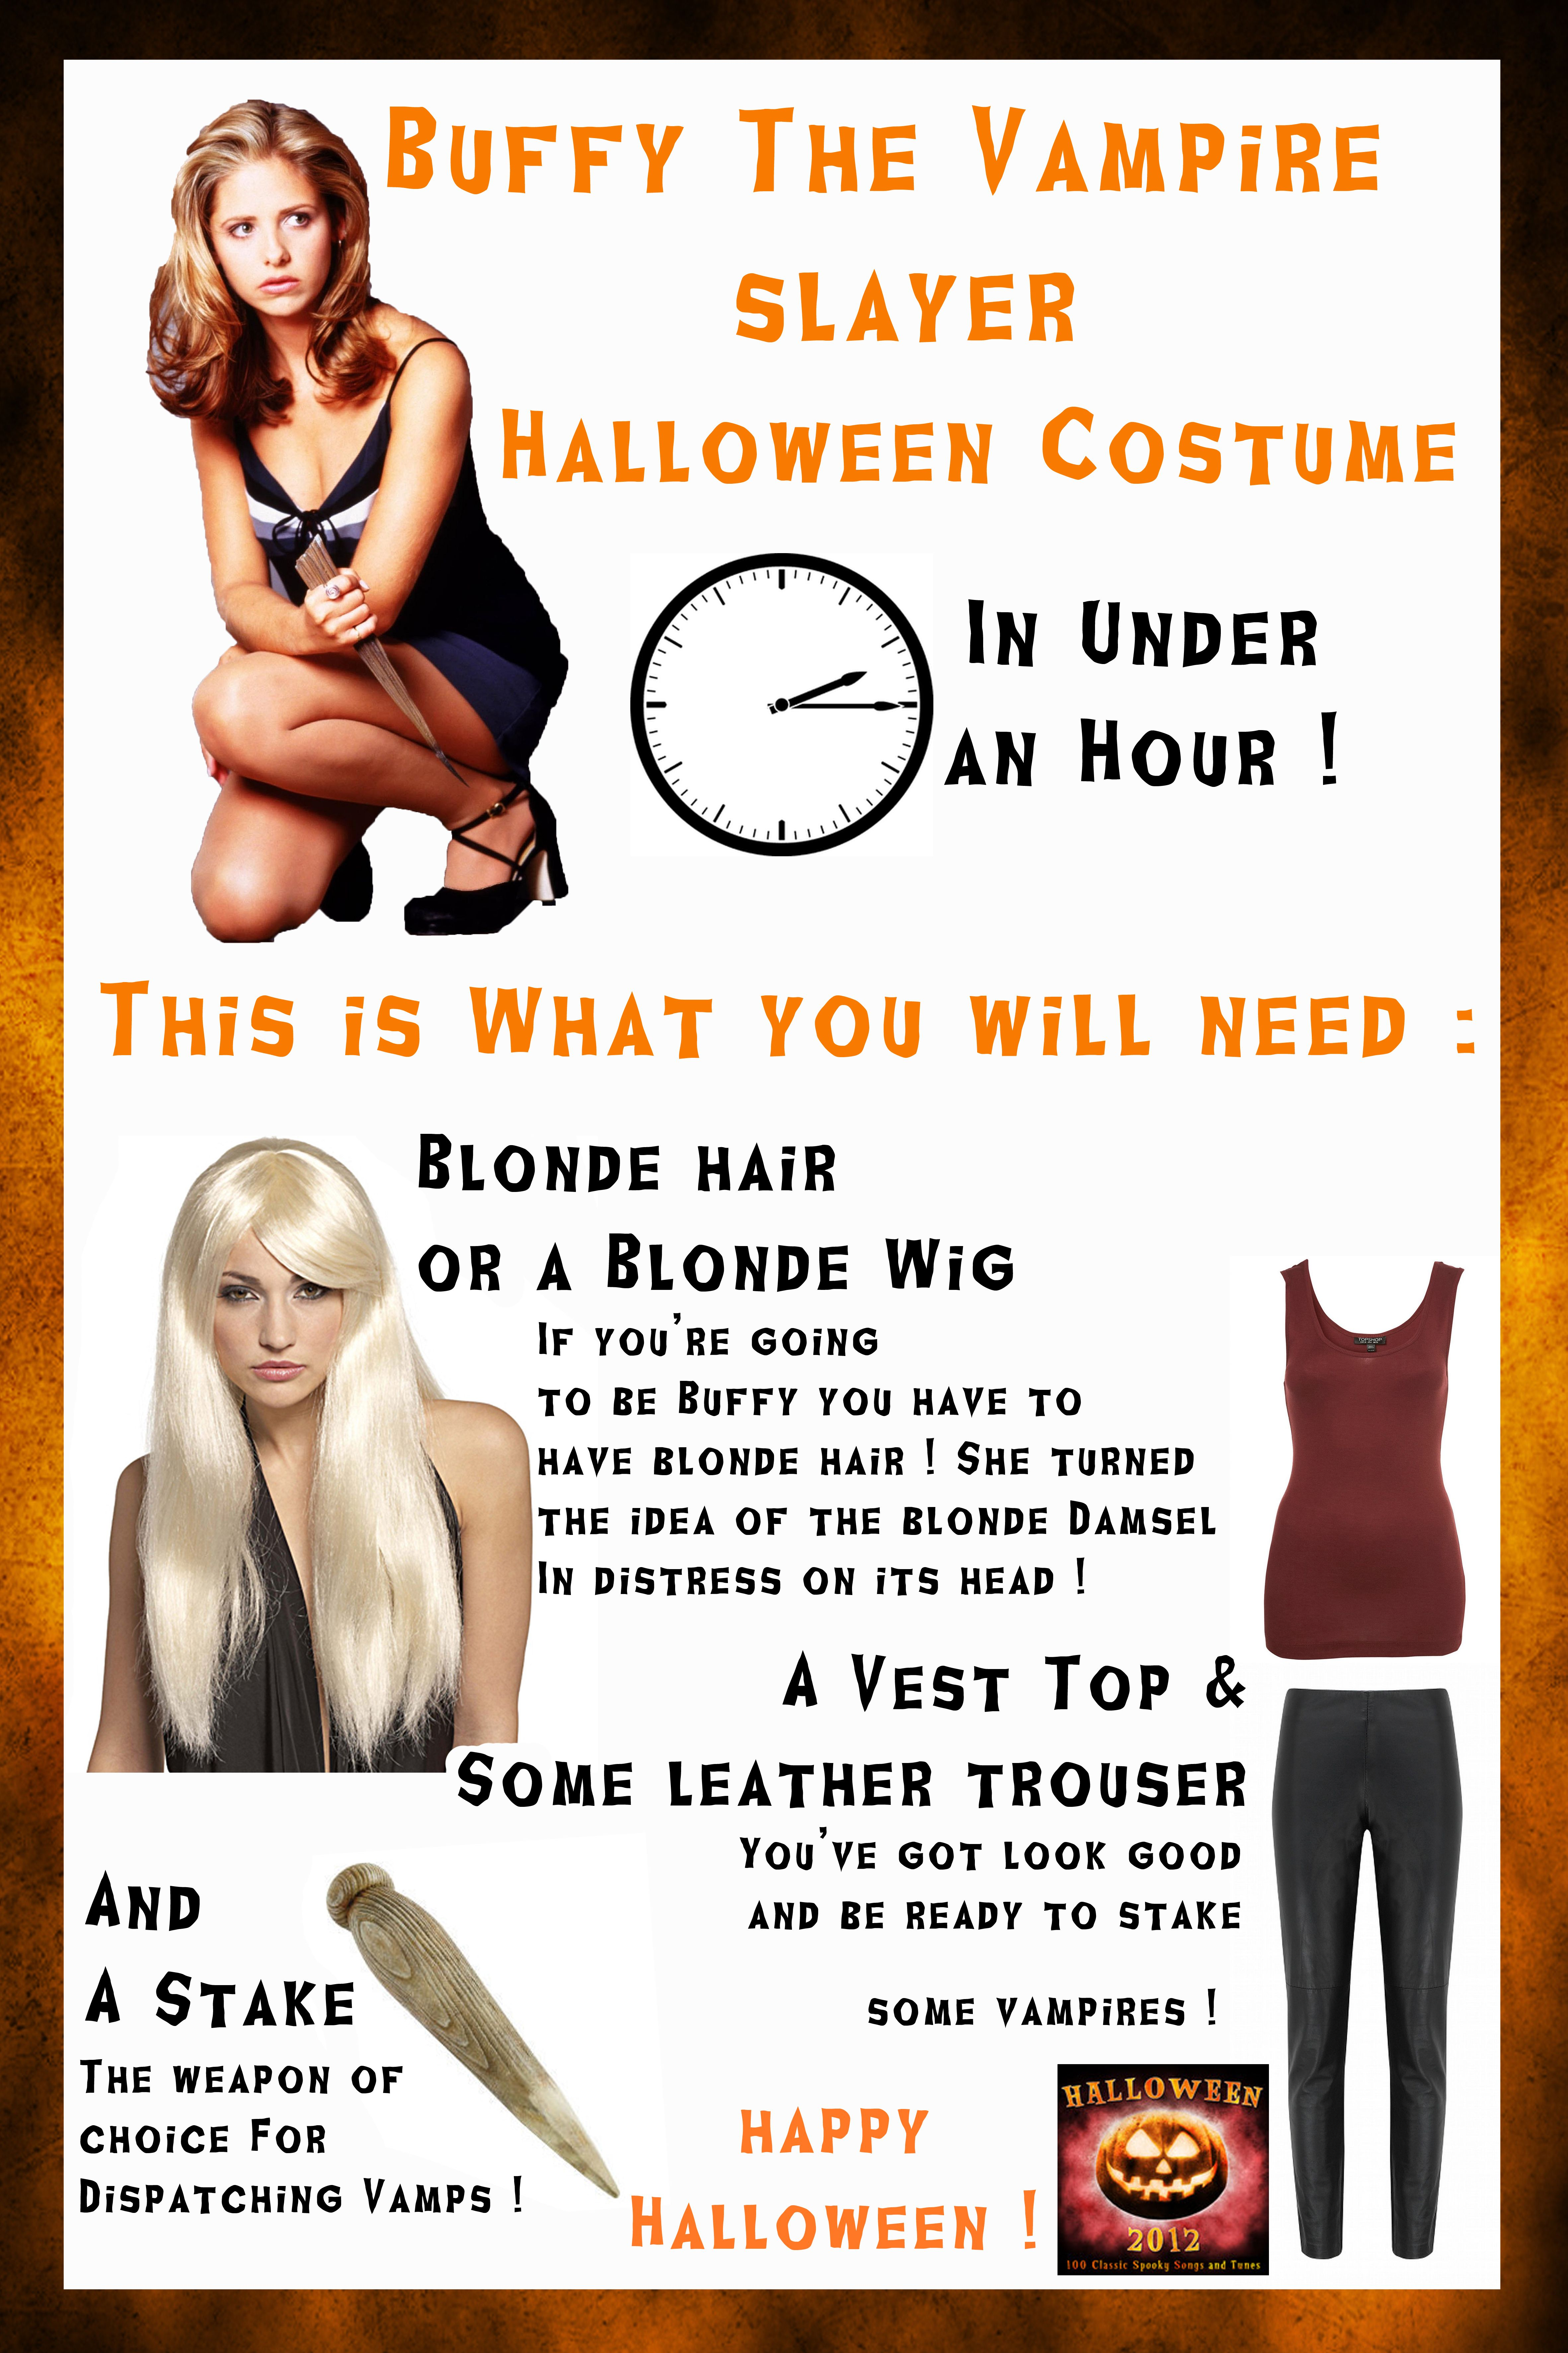 halloween costume in under an hour ! how to be buffy the vampire